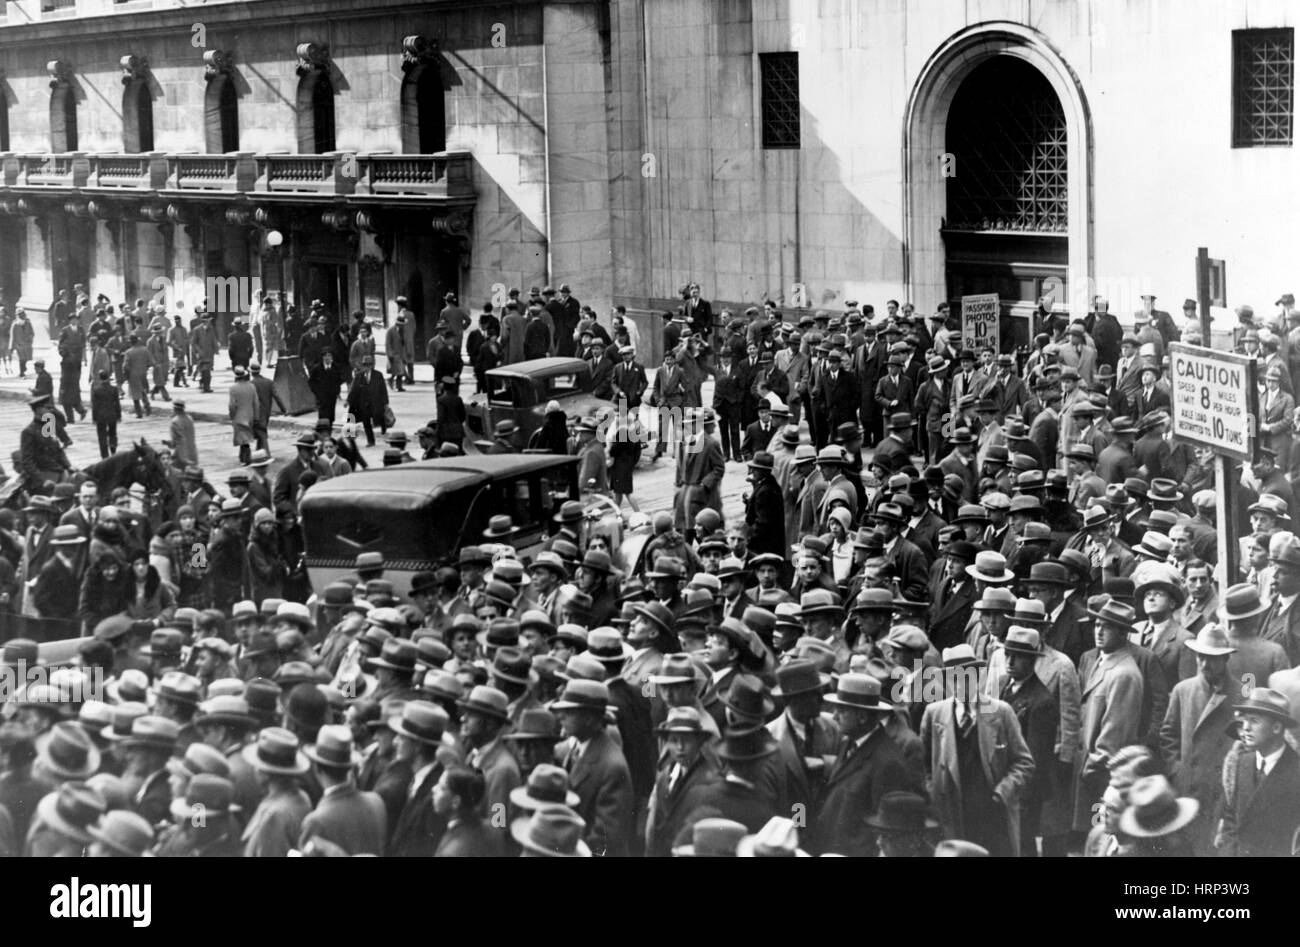 Wall Street Stock Market Crash, 1929 Stock Photo ...